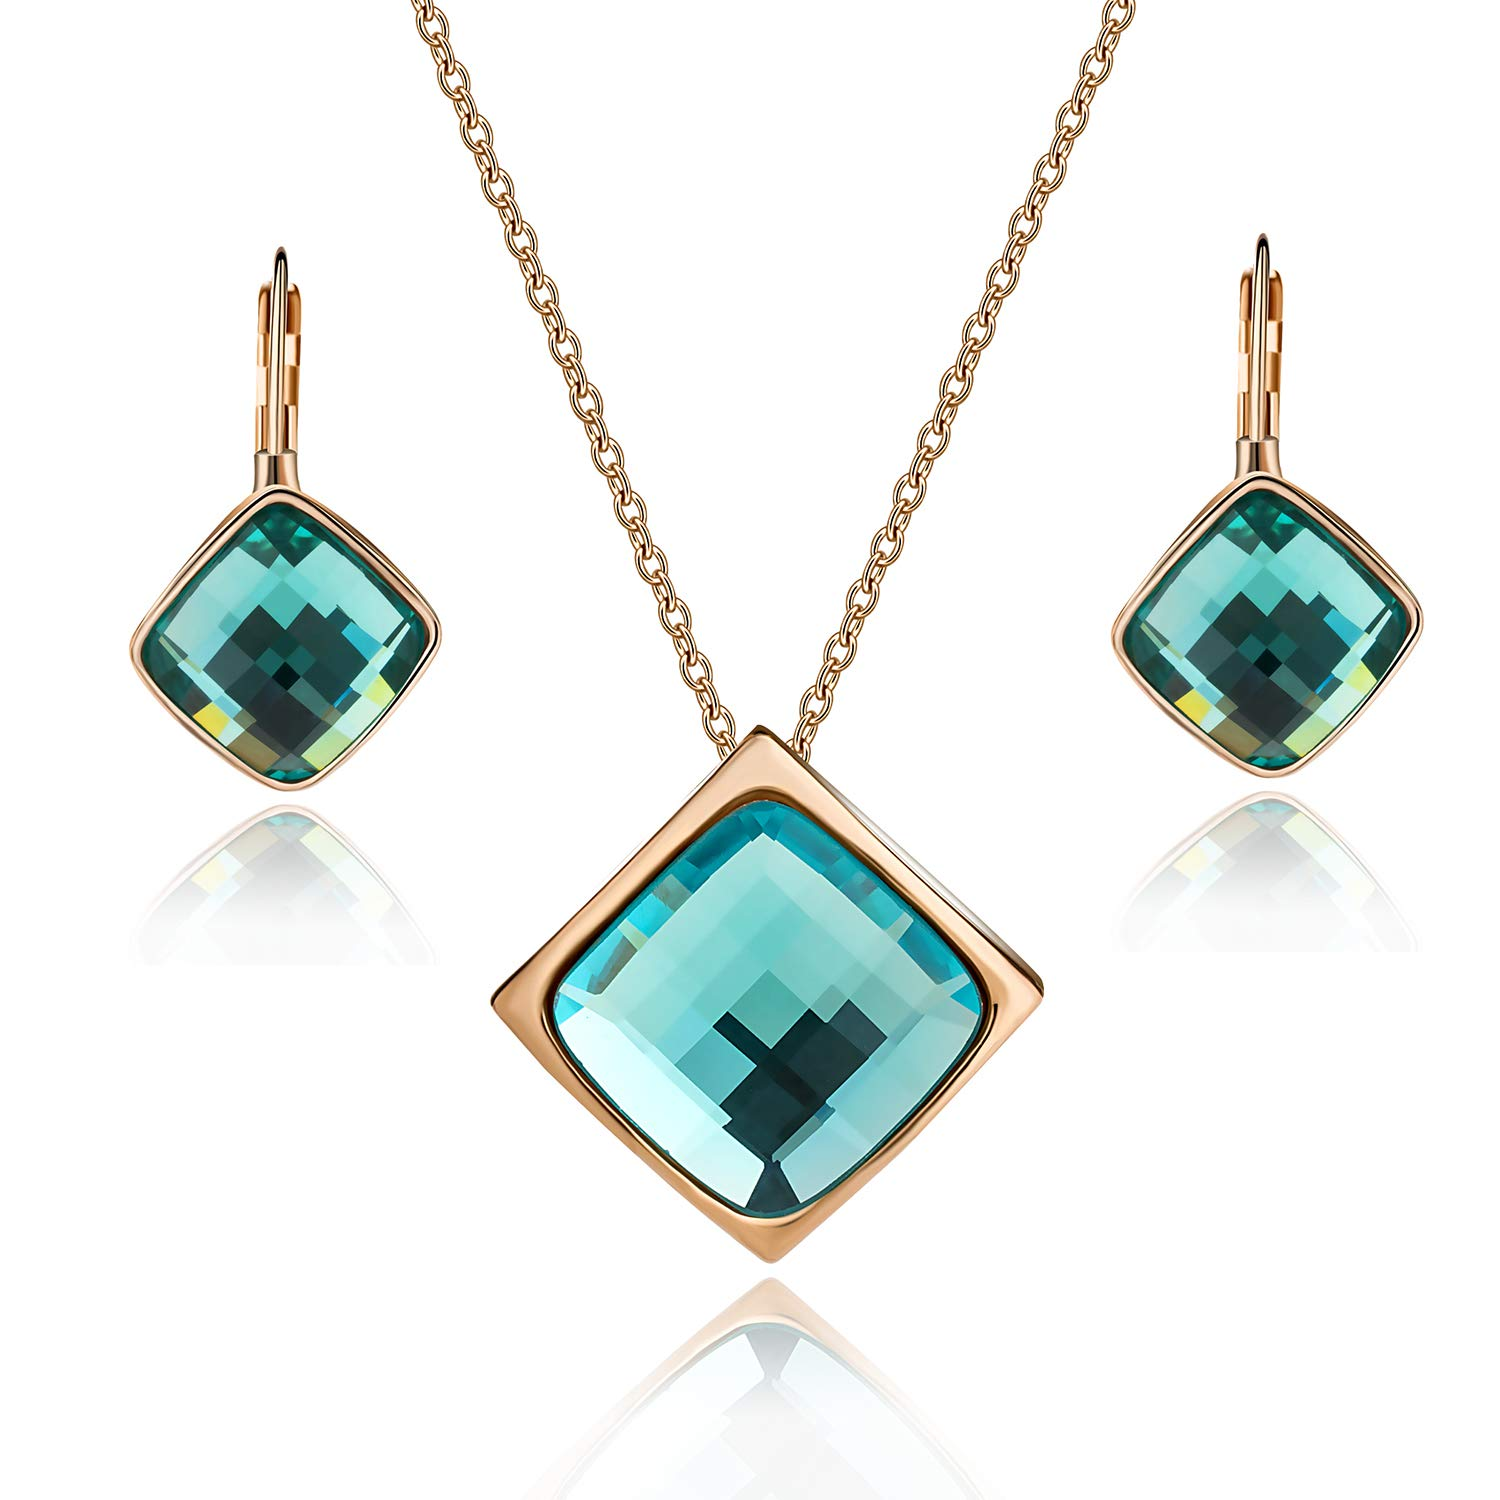 EVEVIC Square Austrian Crystal Necklace Earrings Set for Women Girls 18K Gold Plated Jewelry Set (Green)